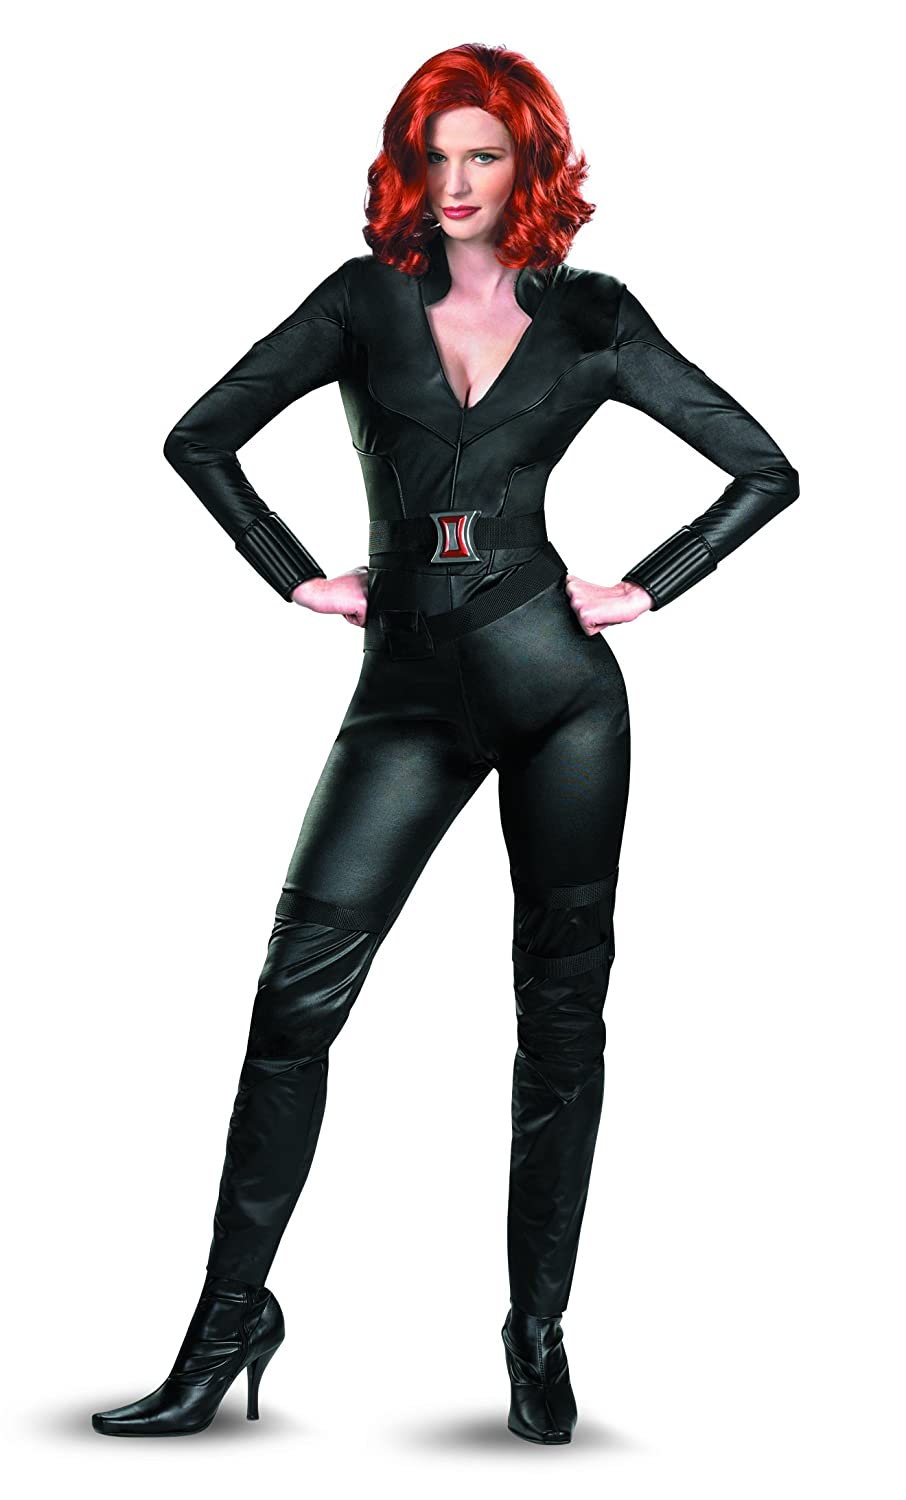 Disguise Marvel's Avengers Movie Black Widow Avengers Deluxe Adult Costume